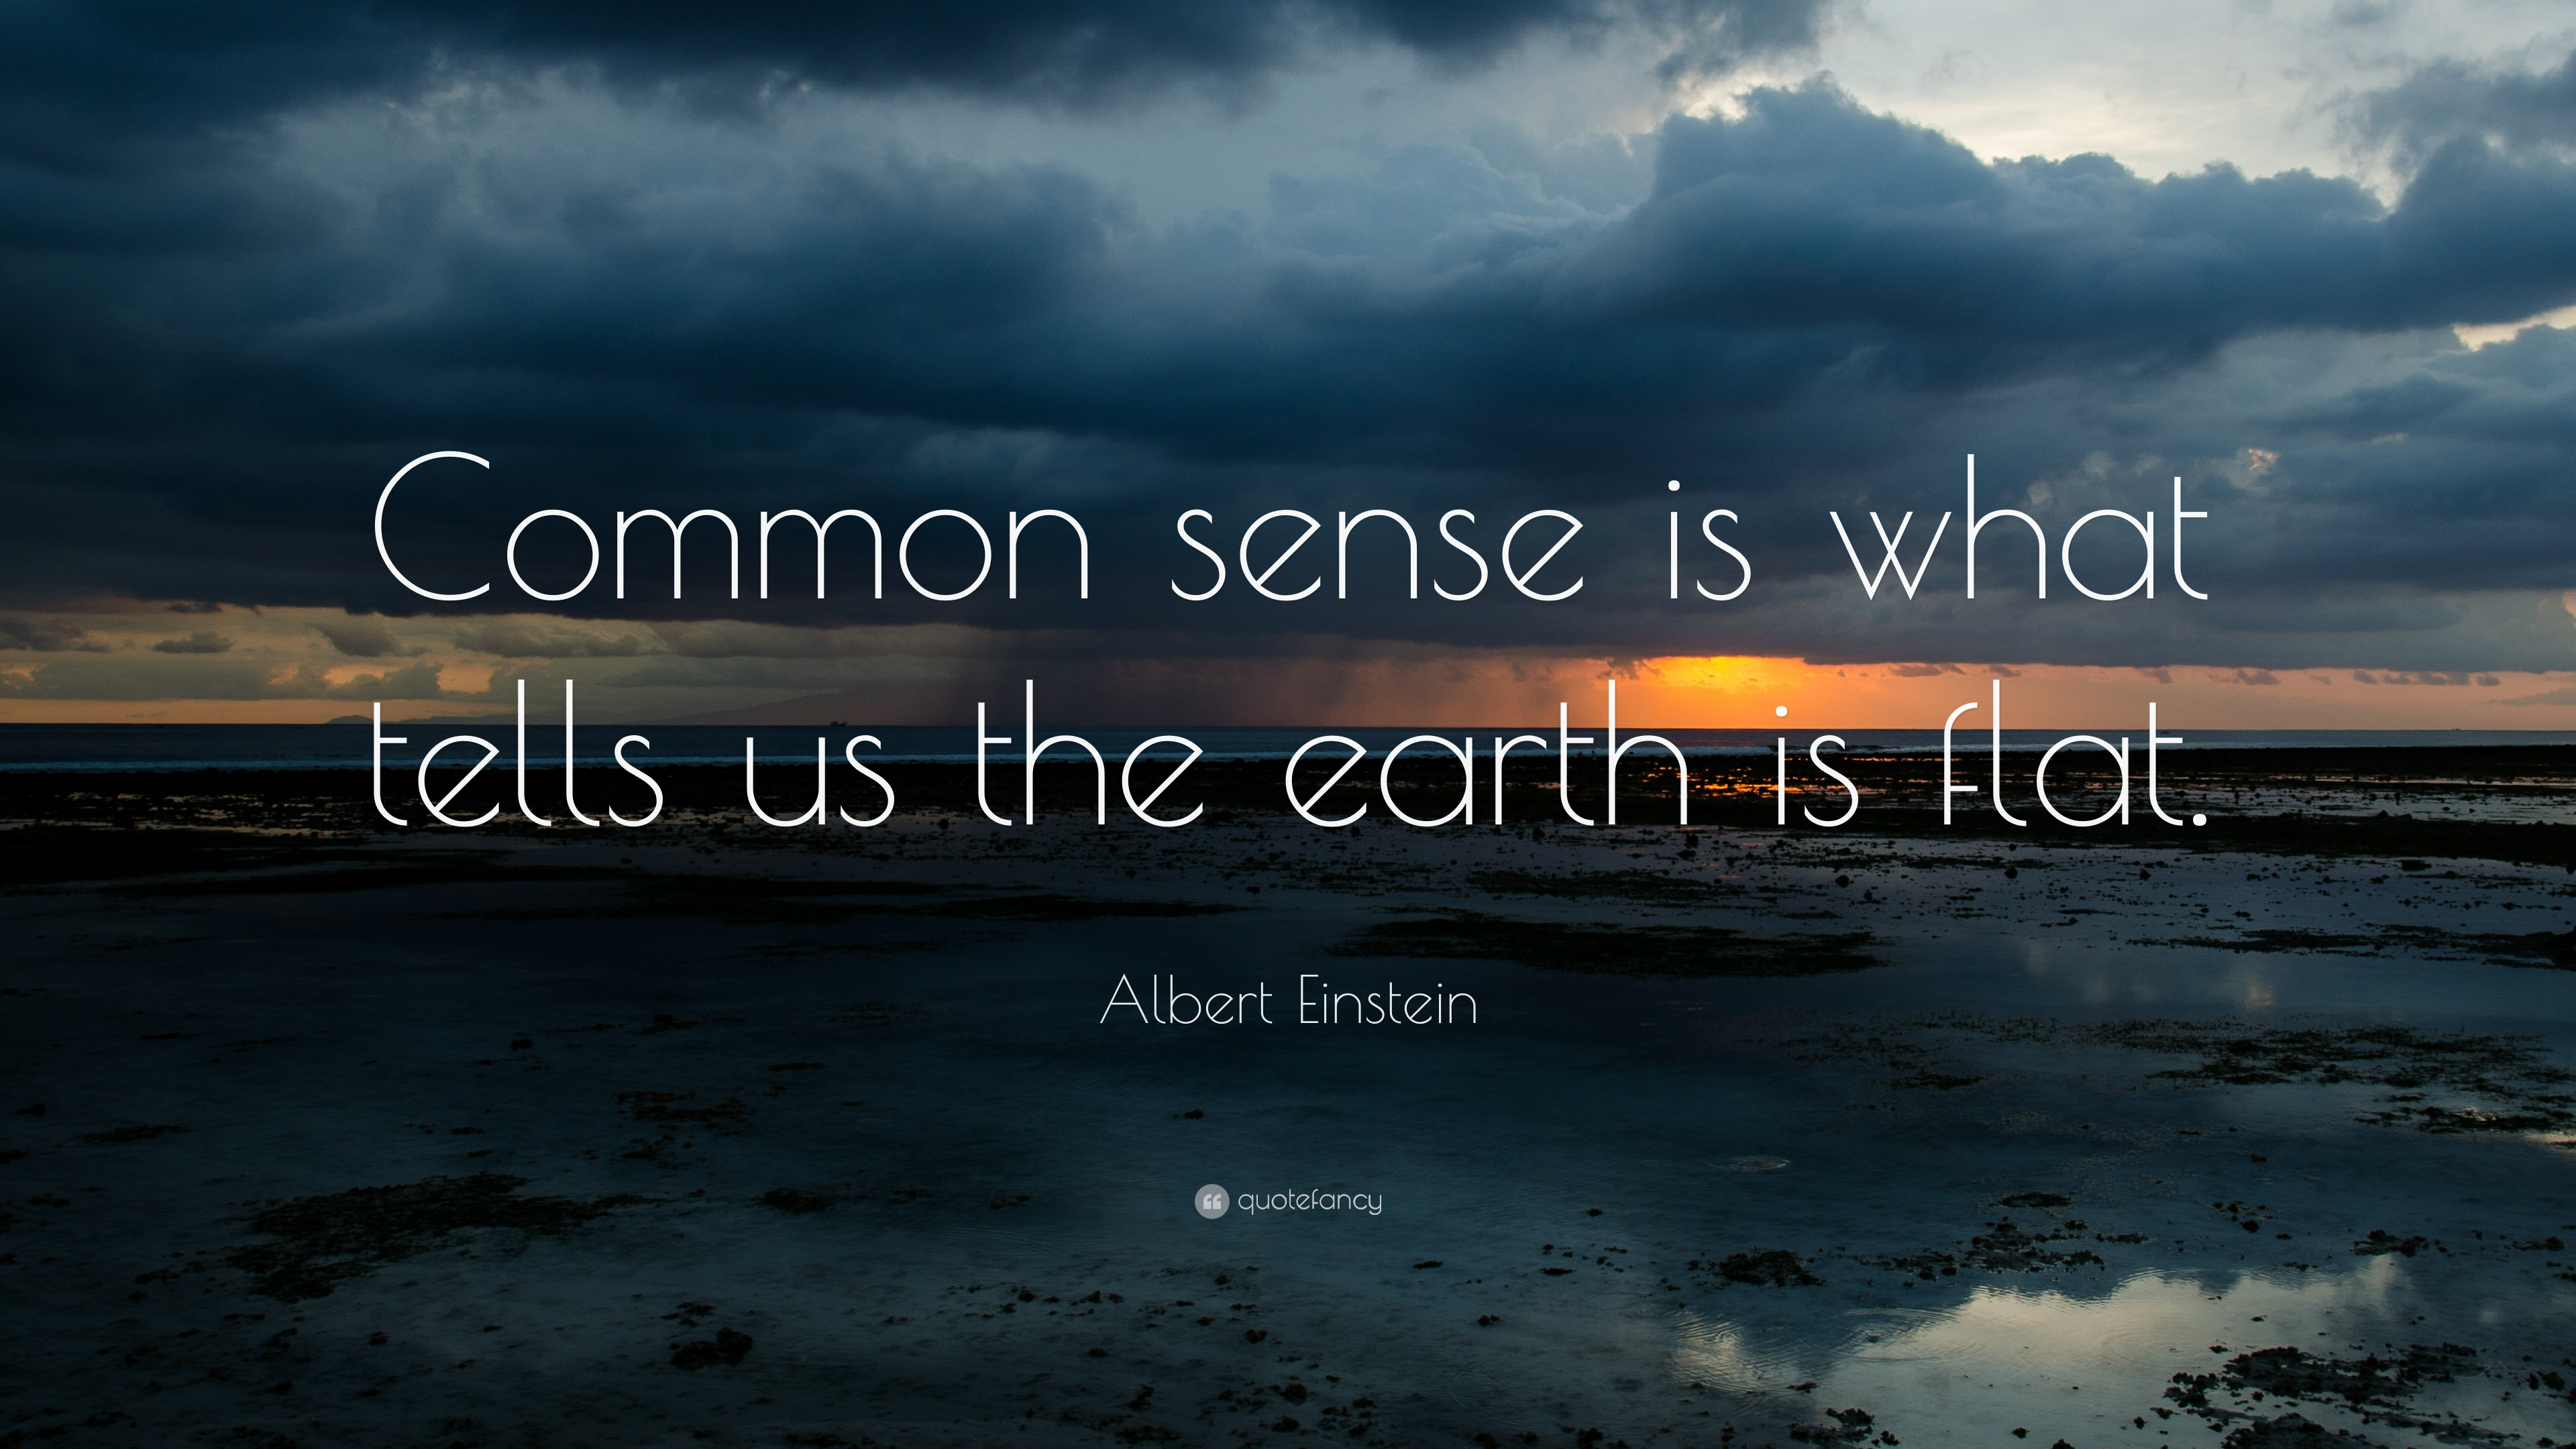 Albert Einstein Quote Common Sense Is What Tells Us The Earth Is Flat 21 Wallpapers